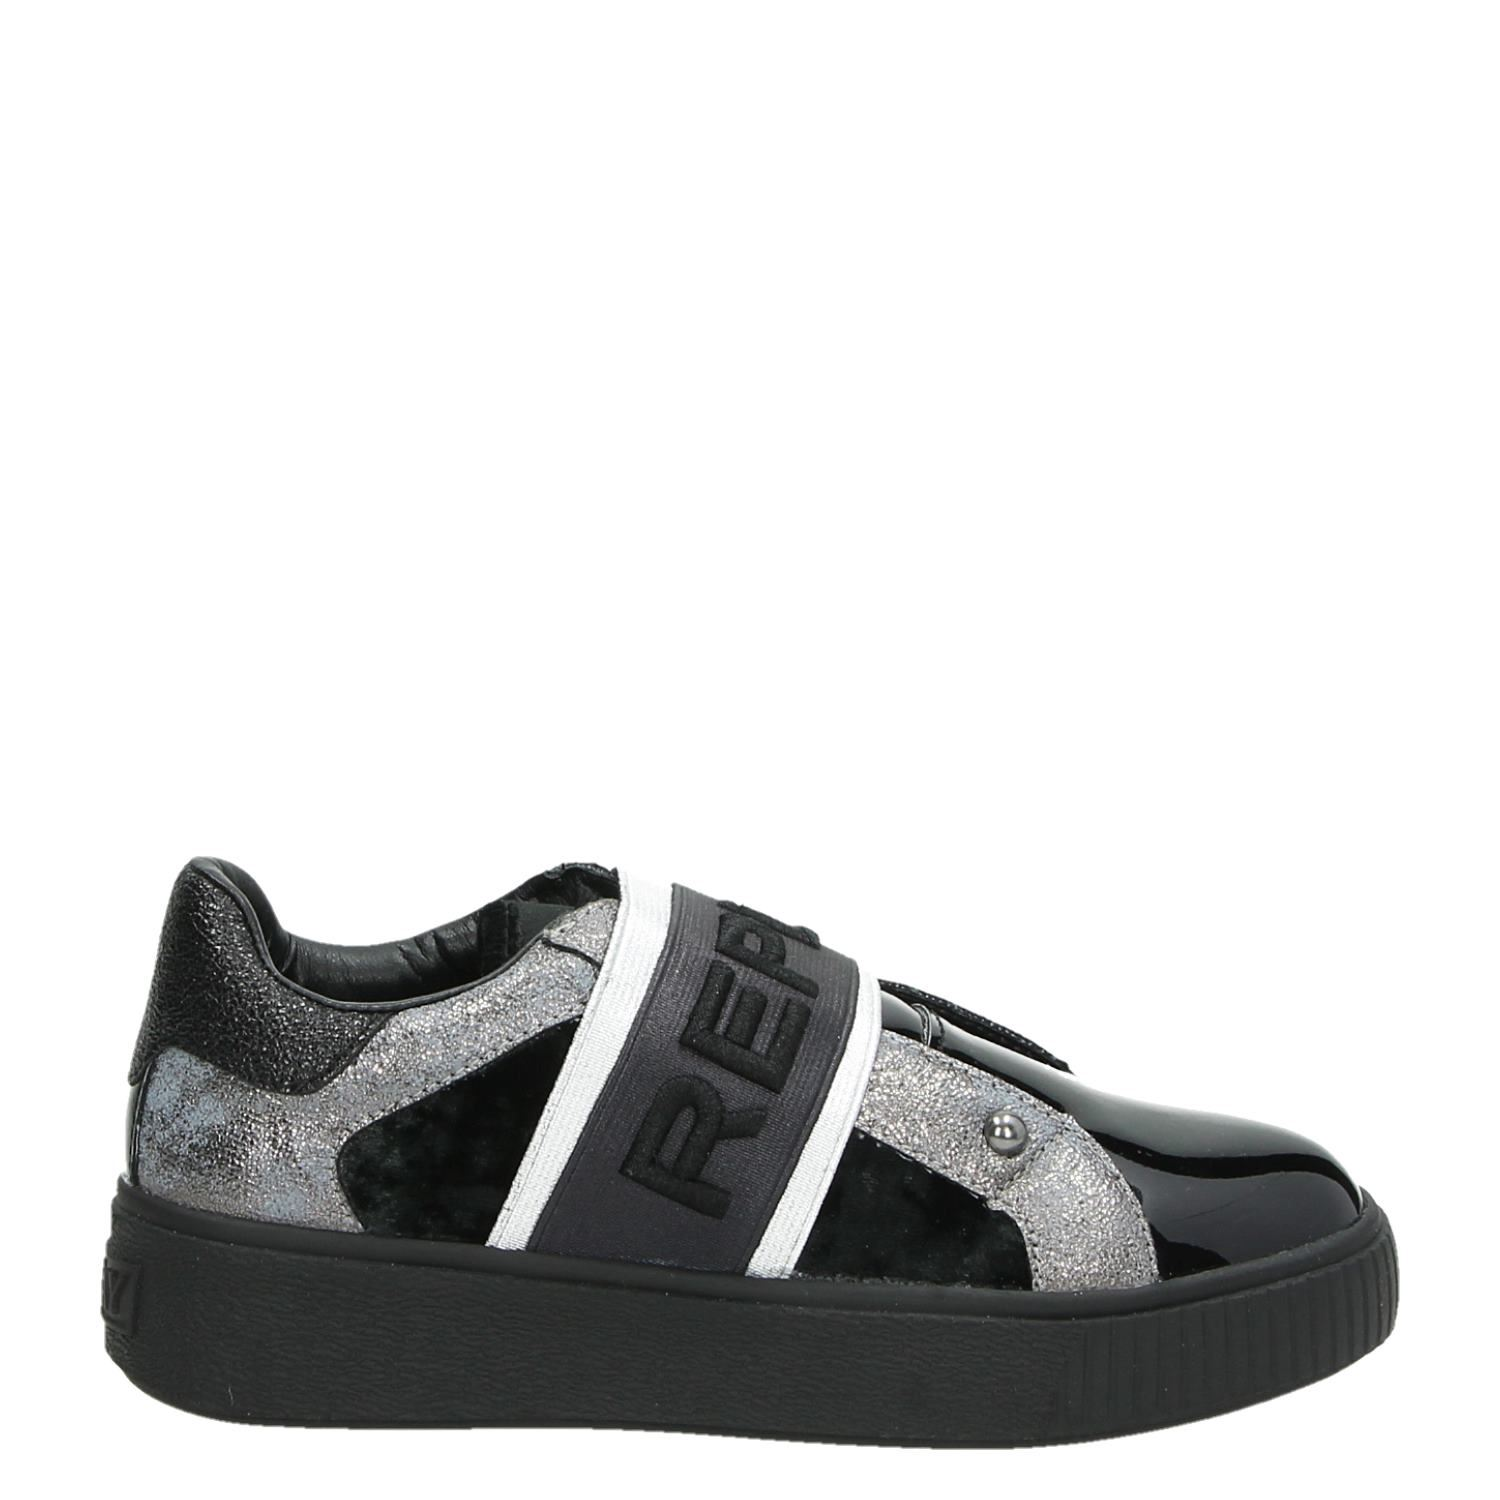 new style 06d05 2e6b1 Replay Donna meisjes lage sneakers zwart